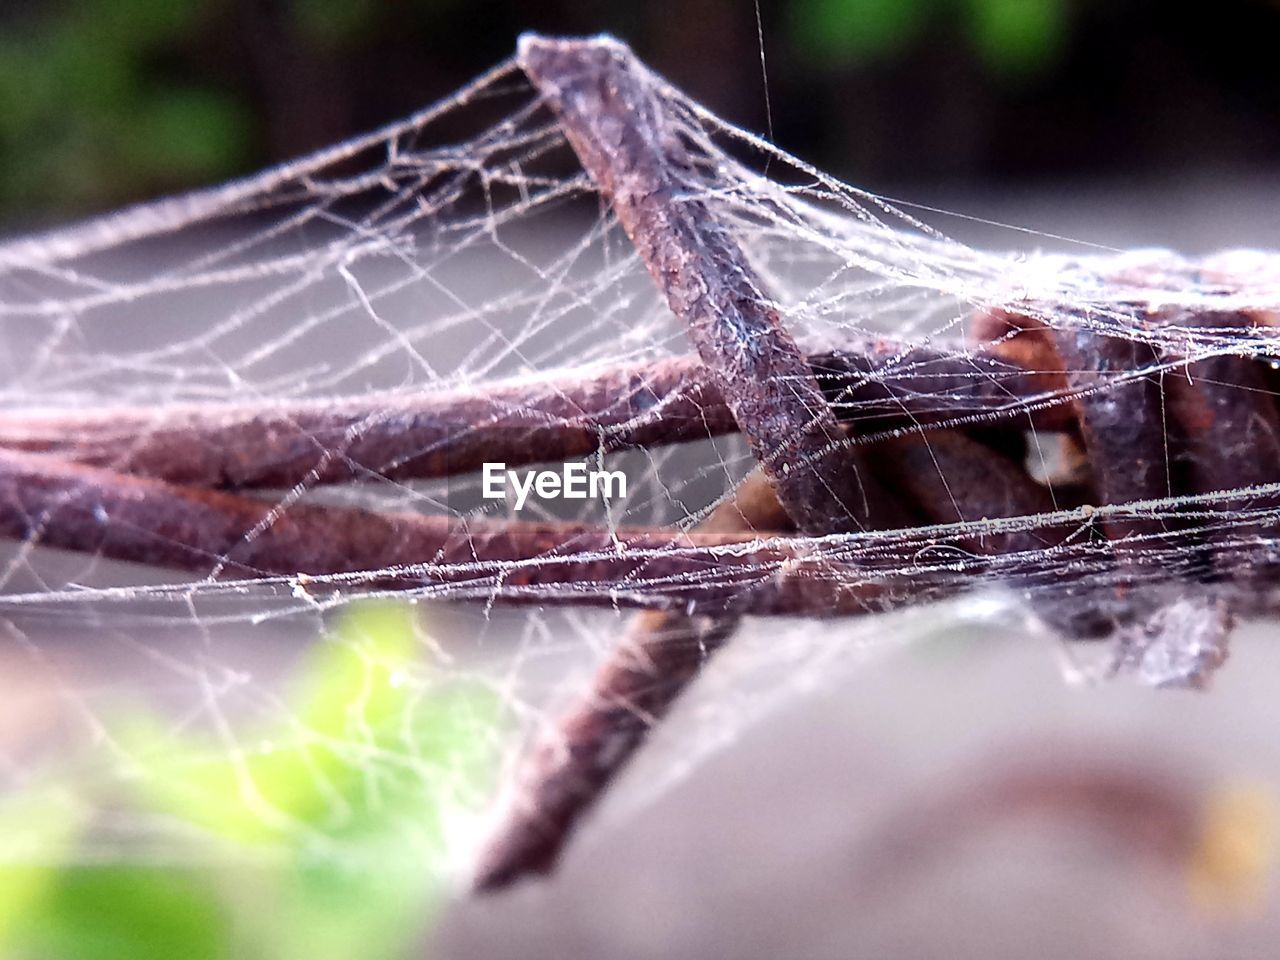 spider web, fragility, close-up, vulnerability, invertebrate, selective focus, animal themes, animal, no people, insect, nature, one animal, animals in the wild, arachnid, focus on foreground, animal wildlife, day, spider, arthropod, outdoors, complexity, web